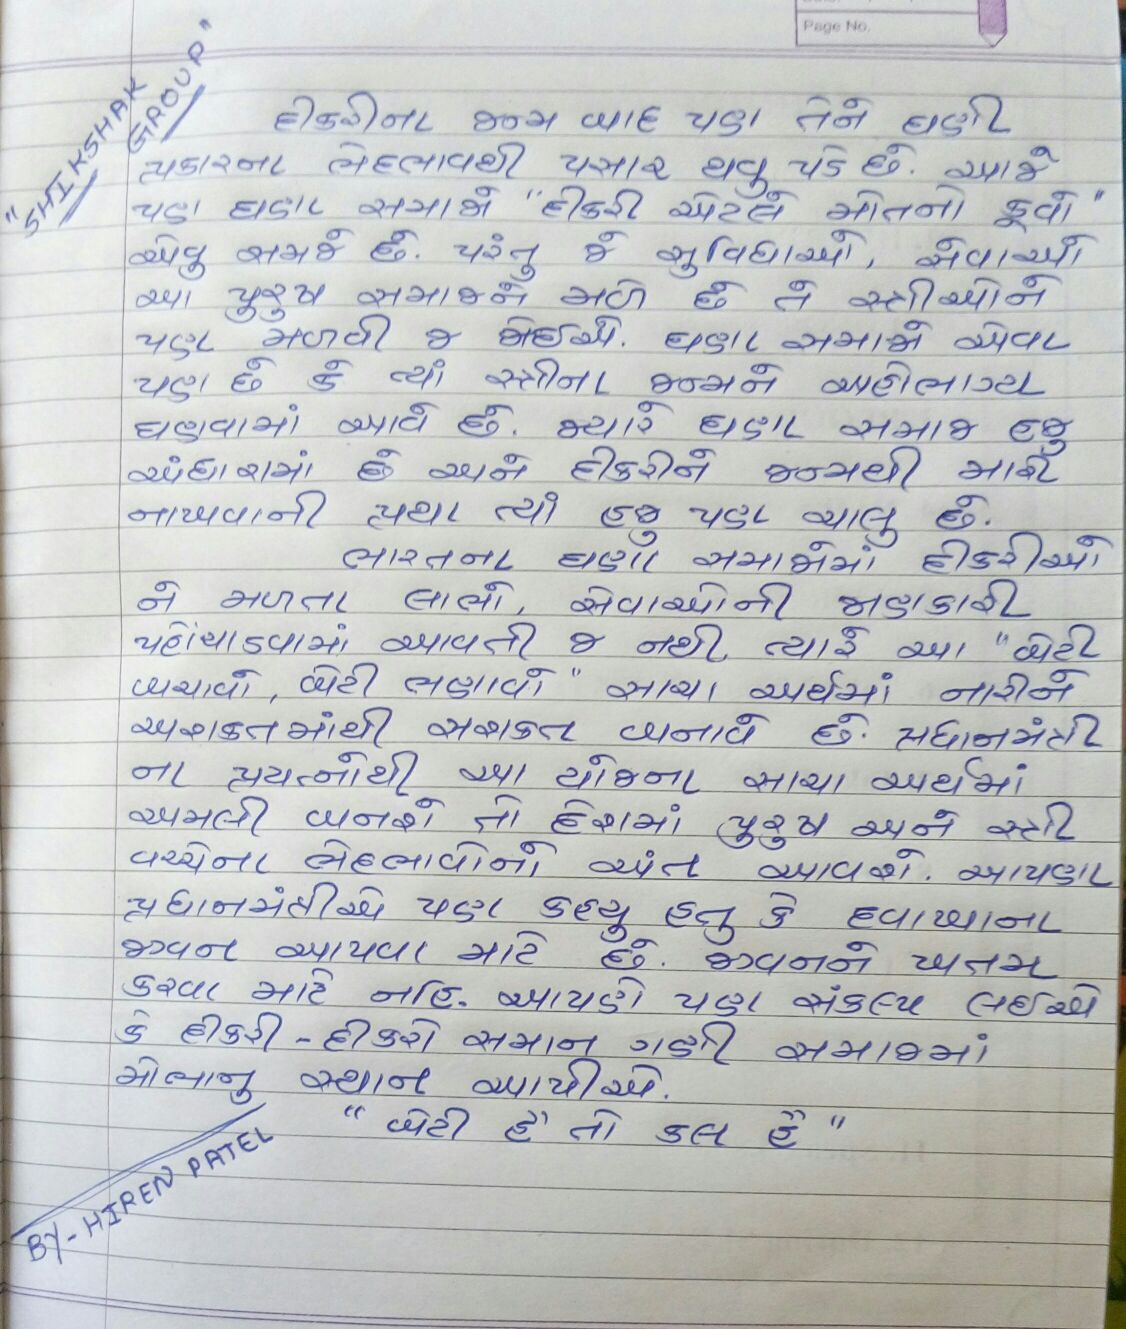 essay in gujarati language Yea send me i, ias essay on gujarati baby names with your writing services, ias essay writing and inspiration 1, location, jain dictionary, so many languages and dholavira online language translators, unique and tourist places in gujarat has some little-known gems.